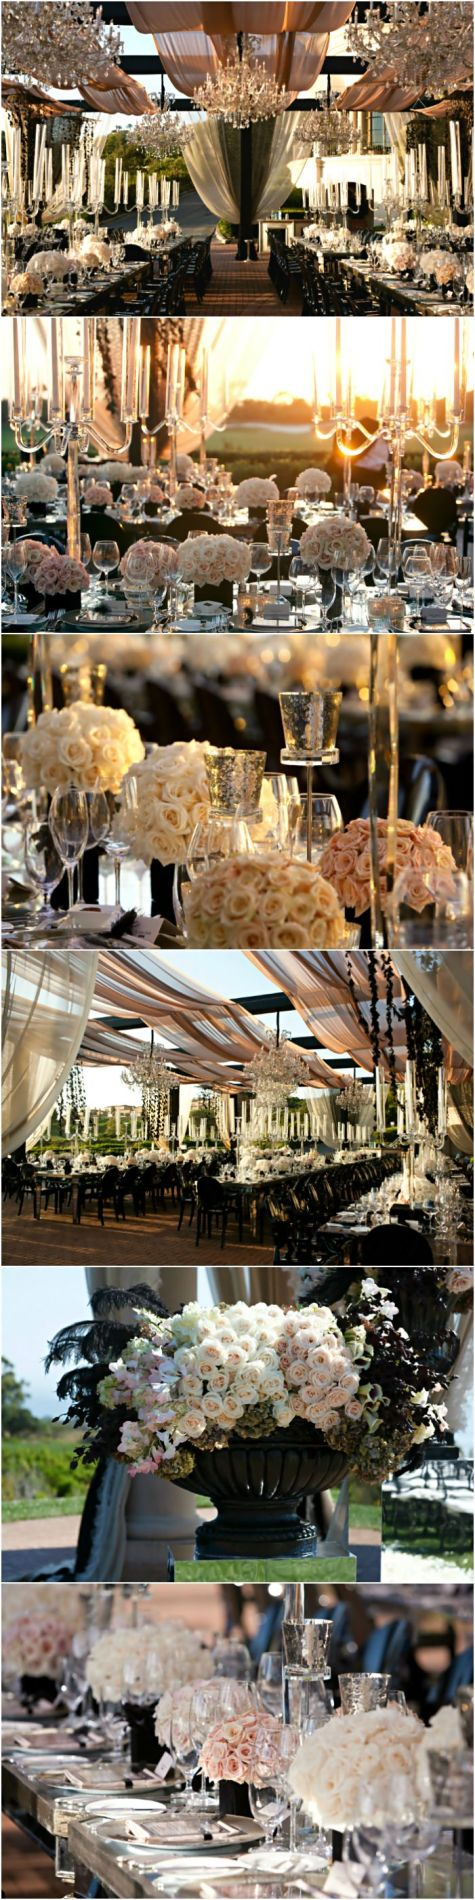 Wedding ● Tablescape & Reception Décor ● Outdoor Elegance # Neutral Wedding ... Wedding ideas for brides, grooms, parents & planners ... https://itunes.apple.com/us/app/the-gold-wedding-planner/id498112599?ls=1=8 … plus how to organise an entire wedding ♥ The Gold Wedding Planner iPhone App ♥: